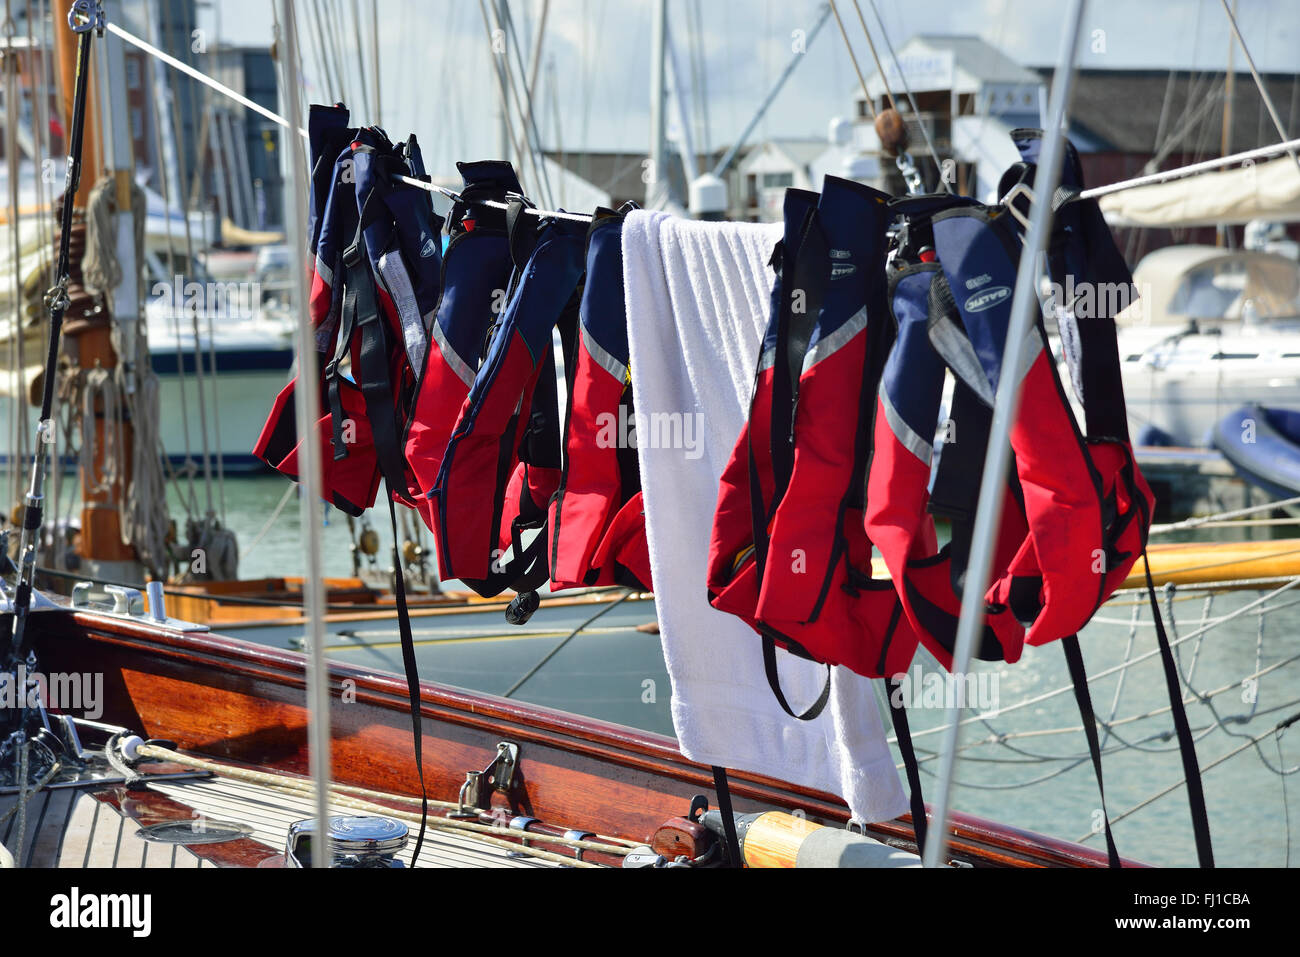 life jackets strung out to dry on yacht in Cowes Marina, Isle of Wight - Stock Image